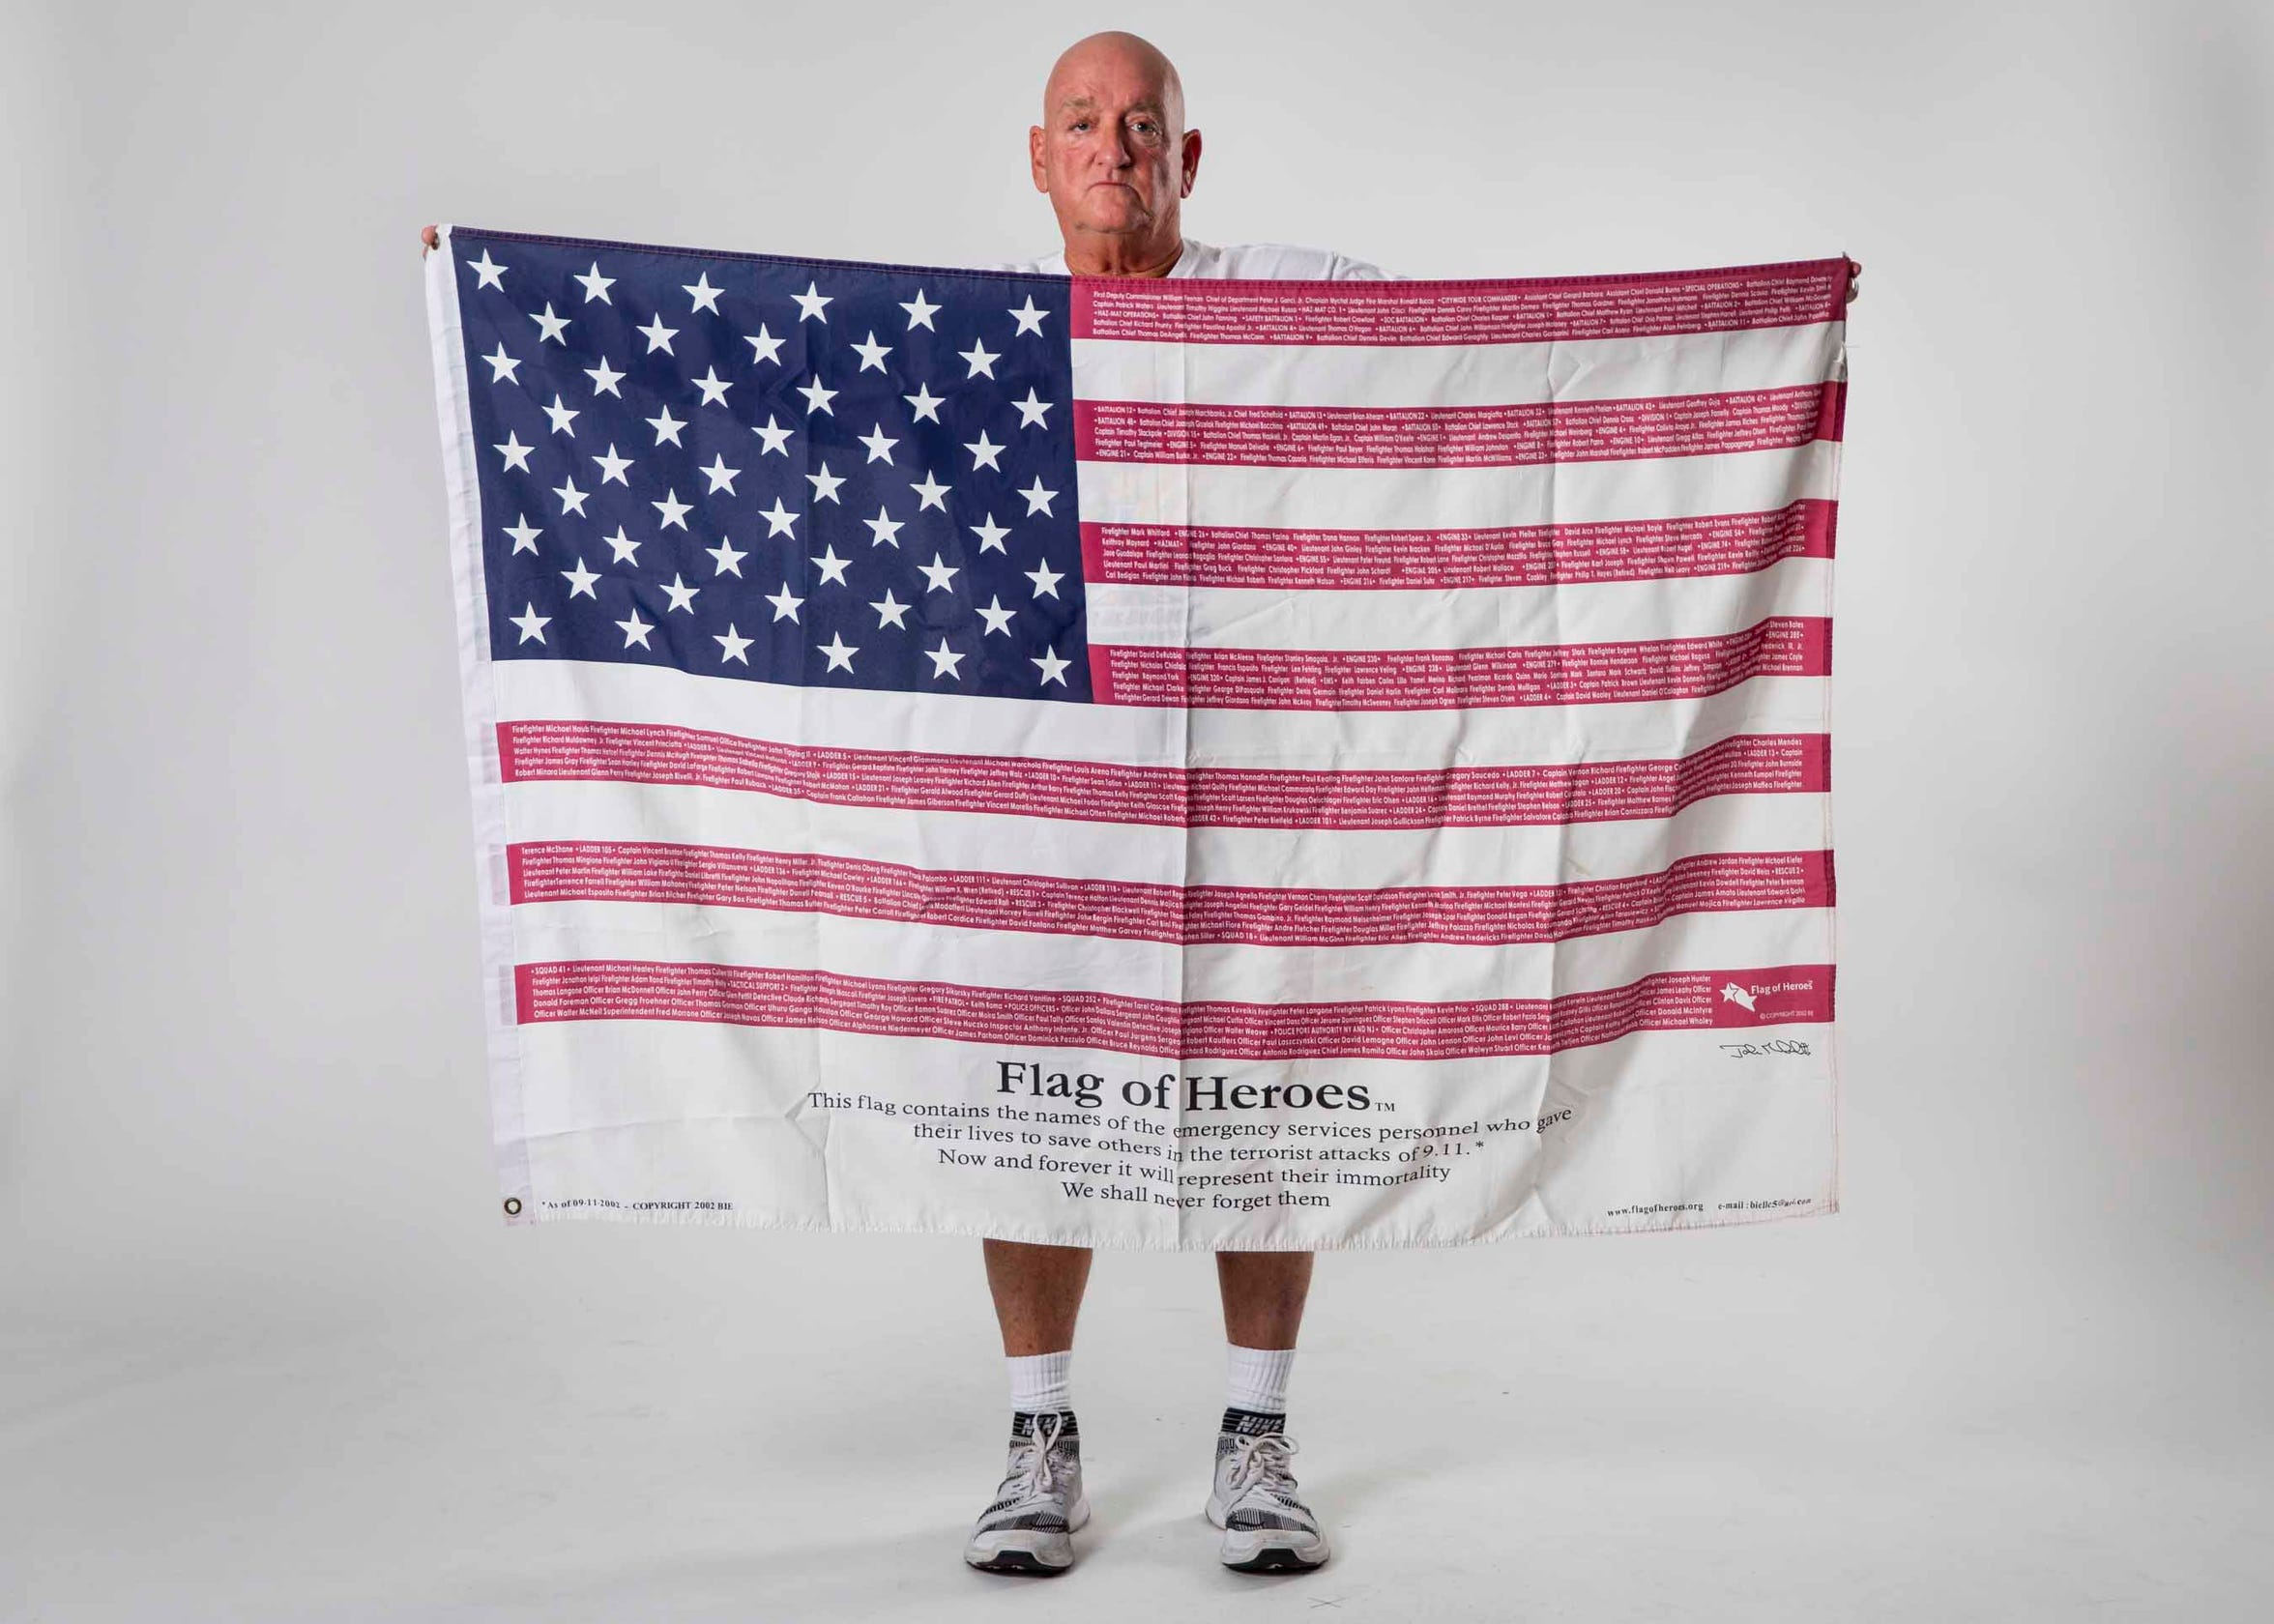 John Wholihan holds up a flag on Monday, Sept. 9, 2019, with the names of the emergency service personnel who lost their lives in service to others during the 9/11 terrorist attacks. The list of names on the flag was current as of 2002 but has continued to grow as hundreds of first responders have died of health complications related to exposure to toxic chemicals on 9/11.